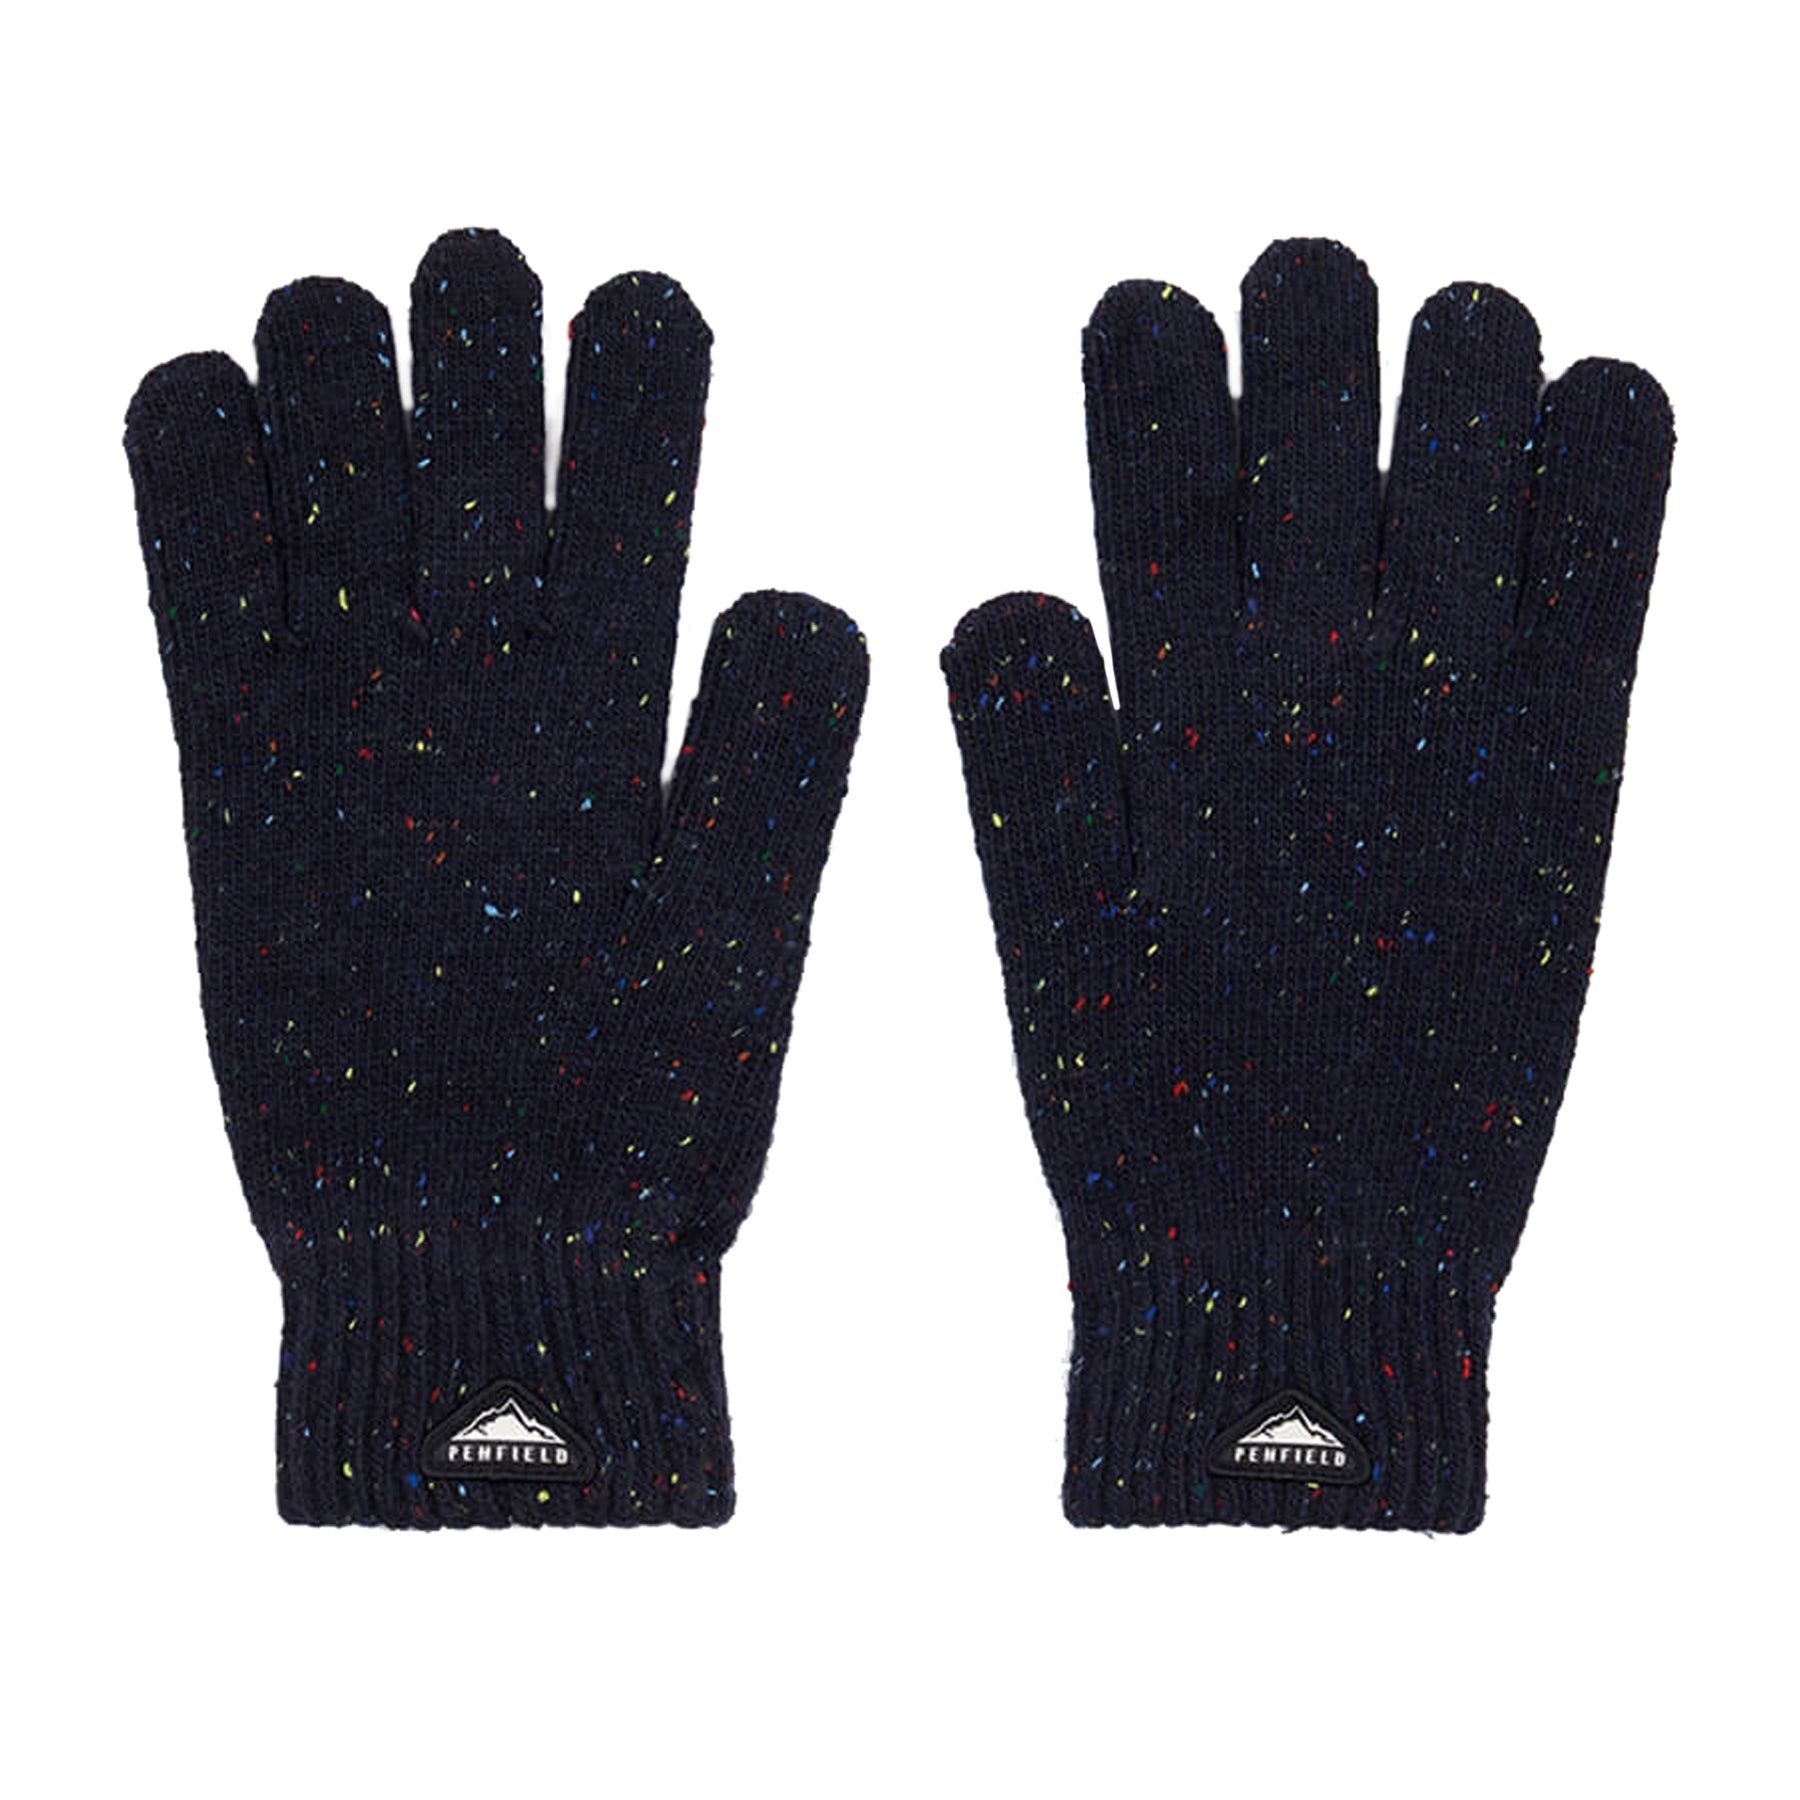 Penfield Highgate Gloves - Navy